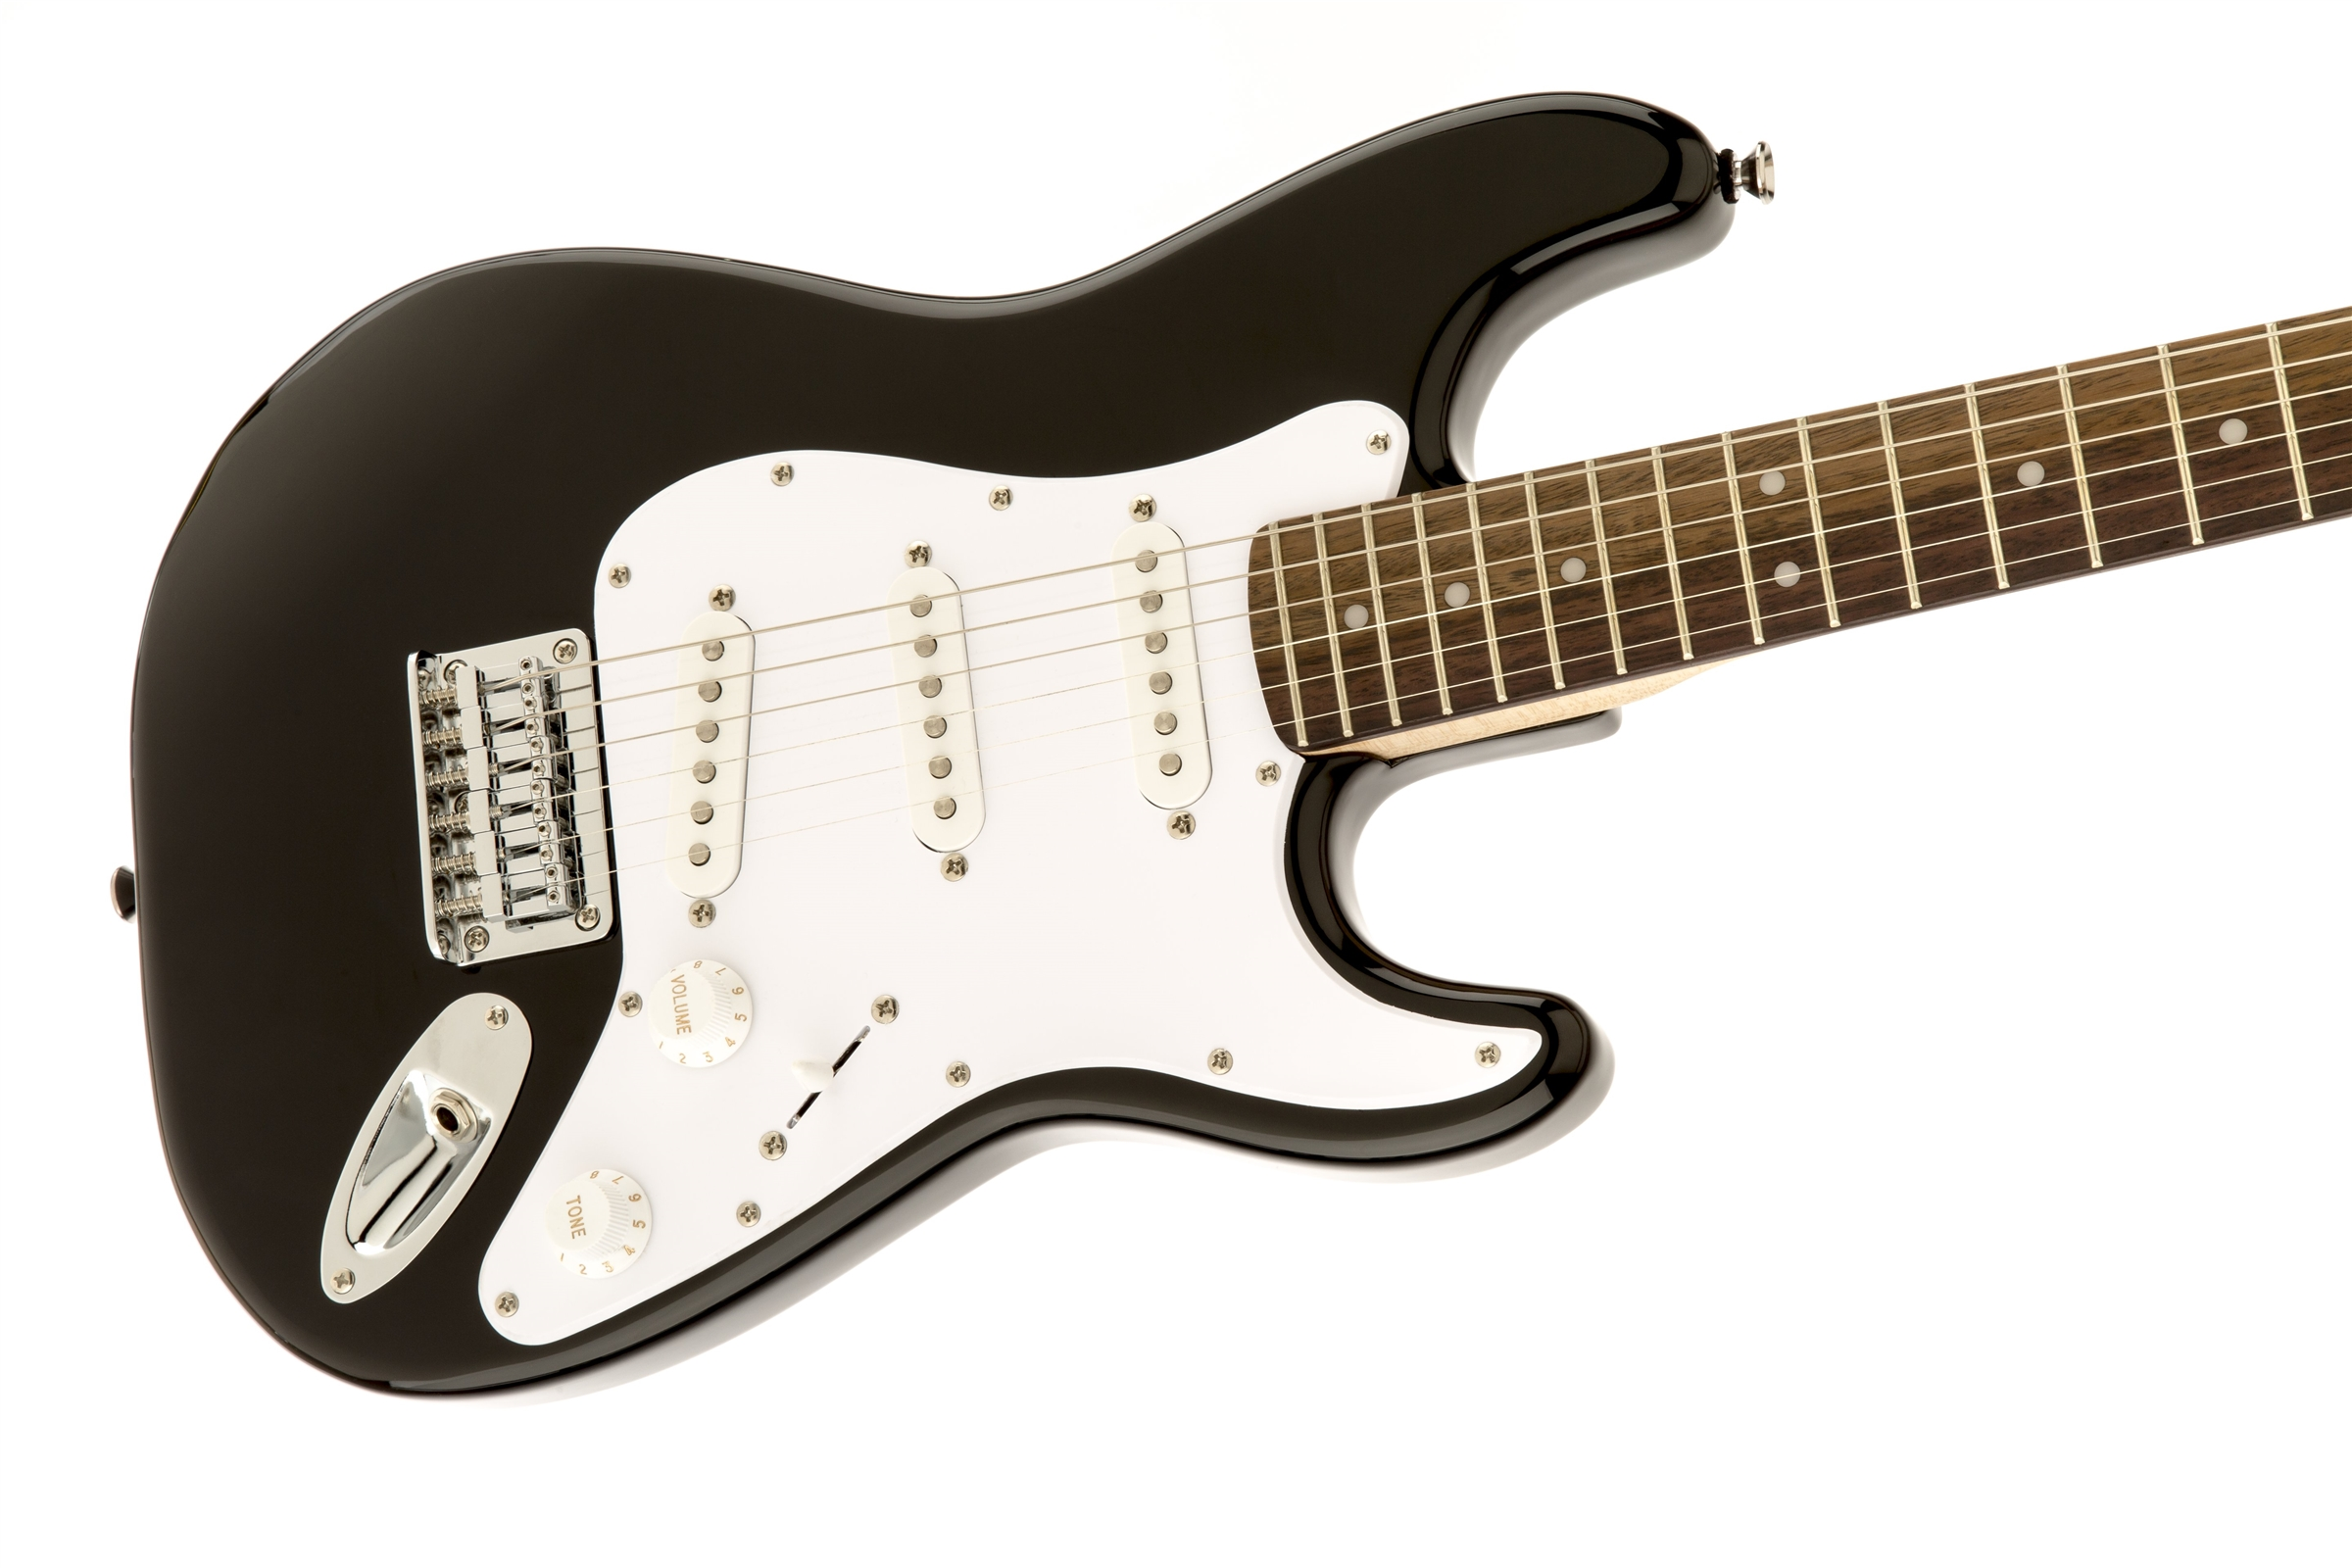 squier mini rosewood fingerboard black squier electric guitars. Black Bedroom Furniture Sets. Home Design Ideas